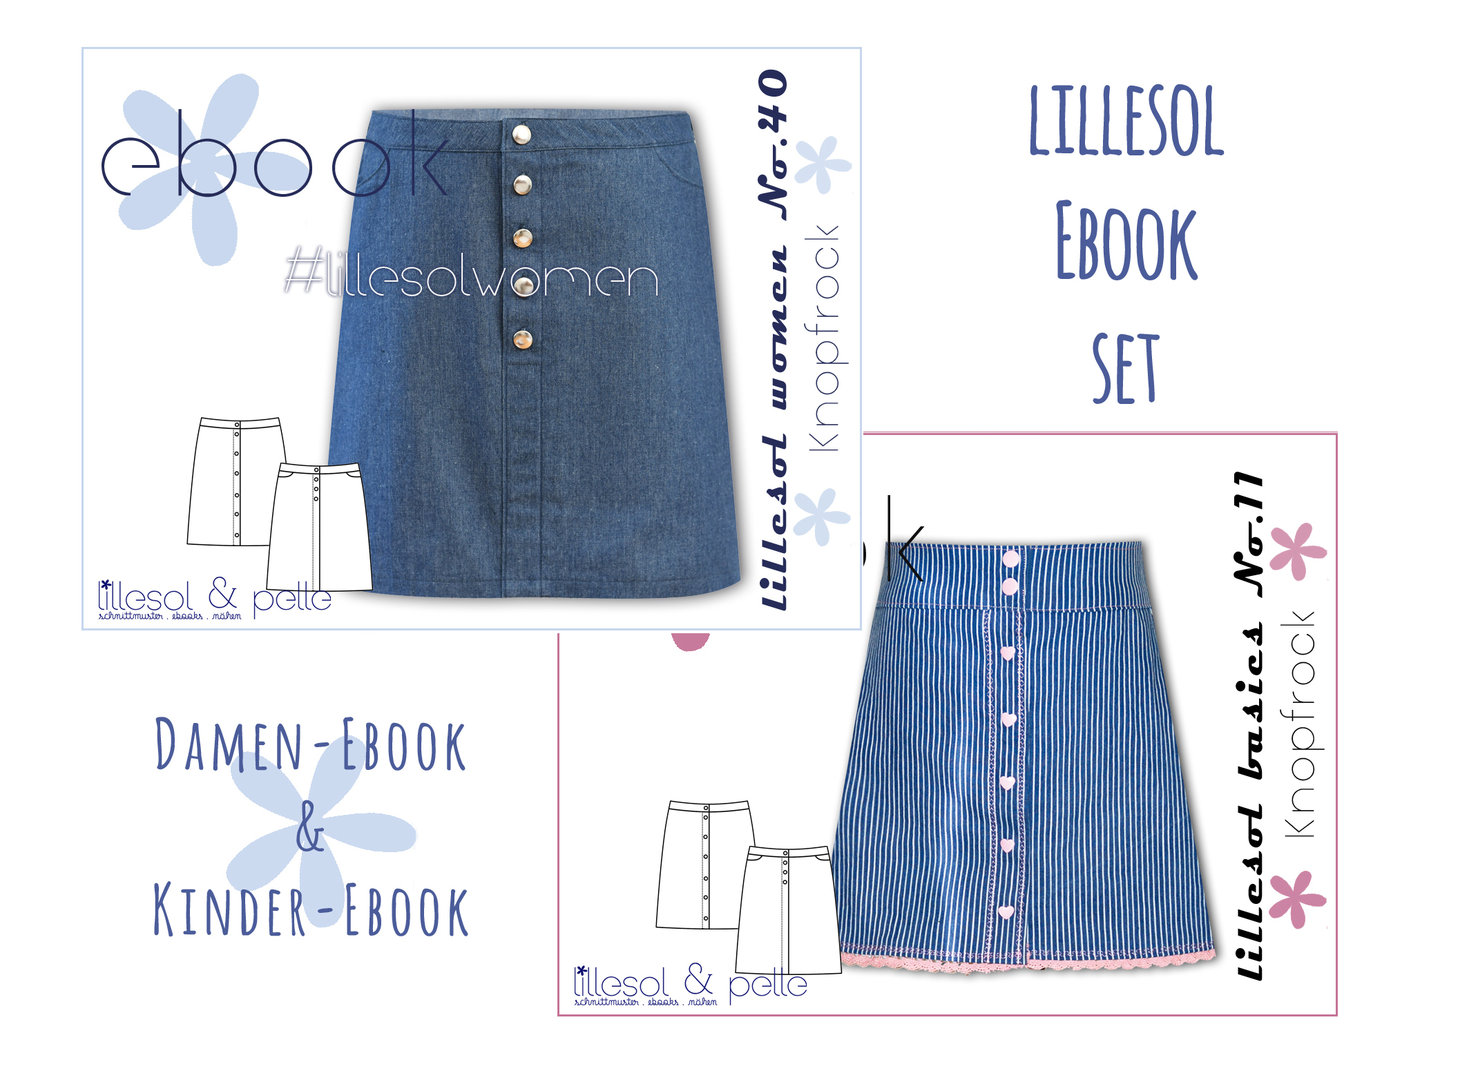 lillesol ebook set basics No.11 und women No.40 * mit Video-Nähanleitung *